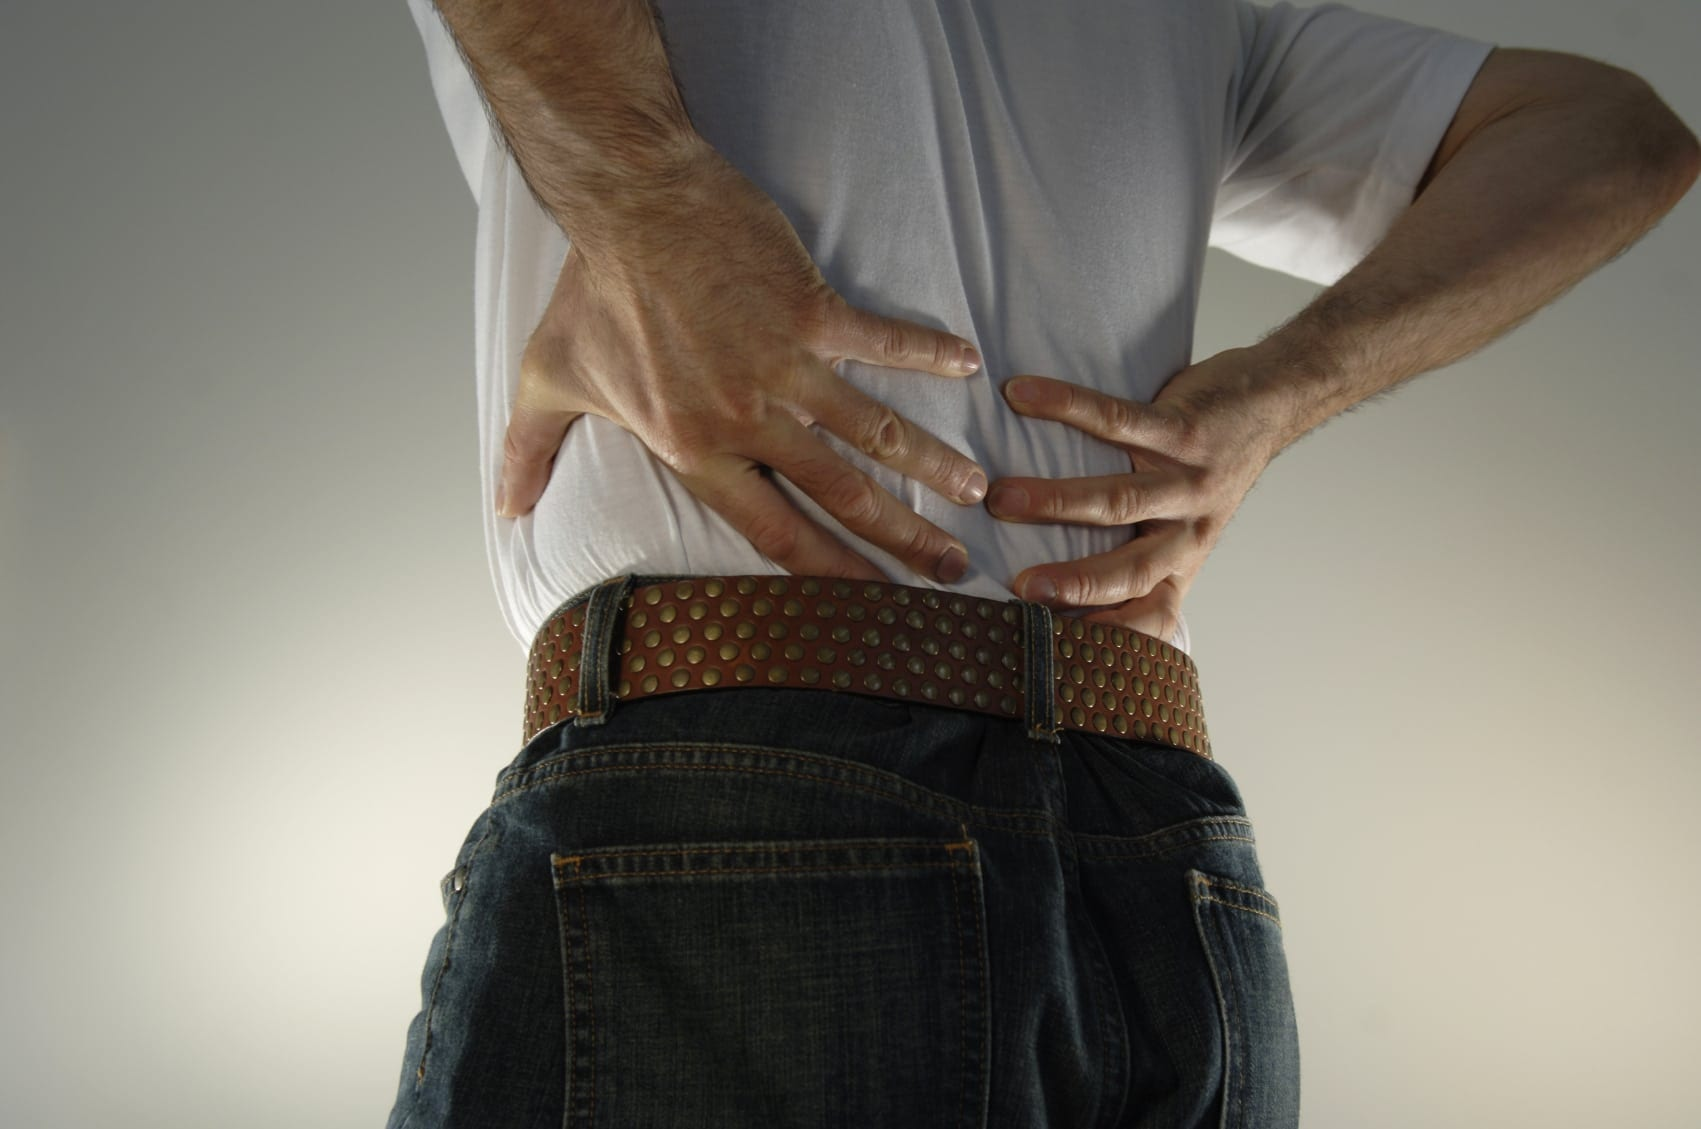 A Minor Injury Can Be A Warning For Big Problems